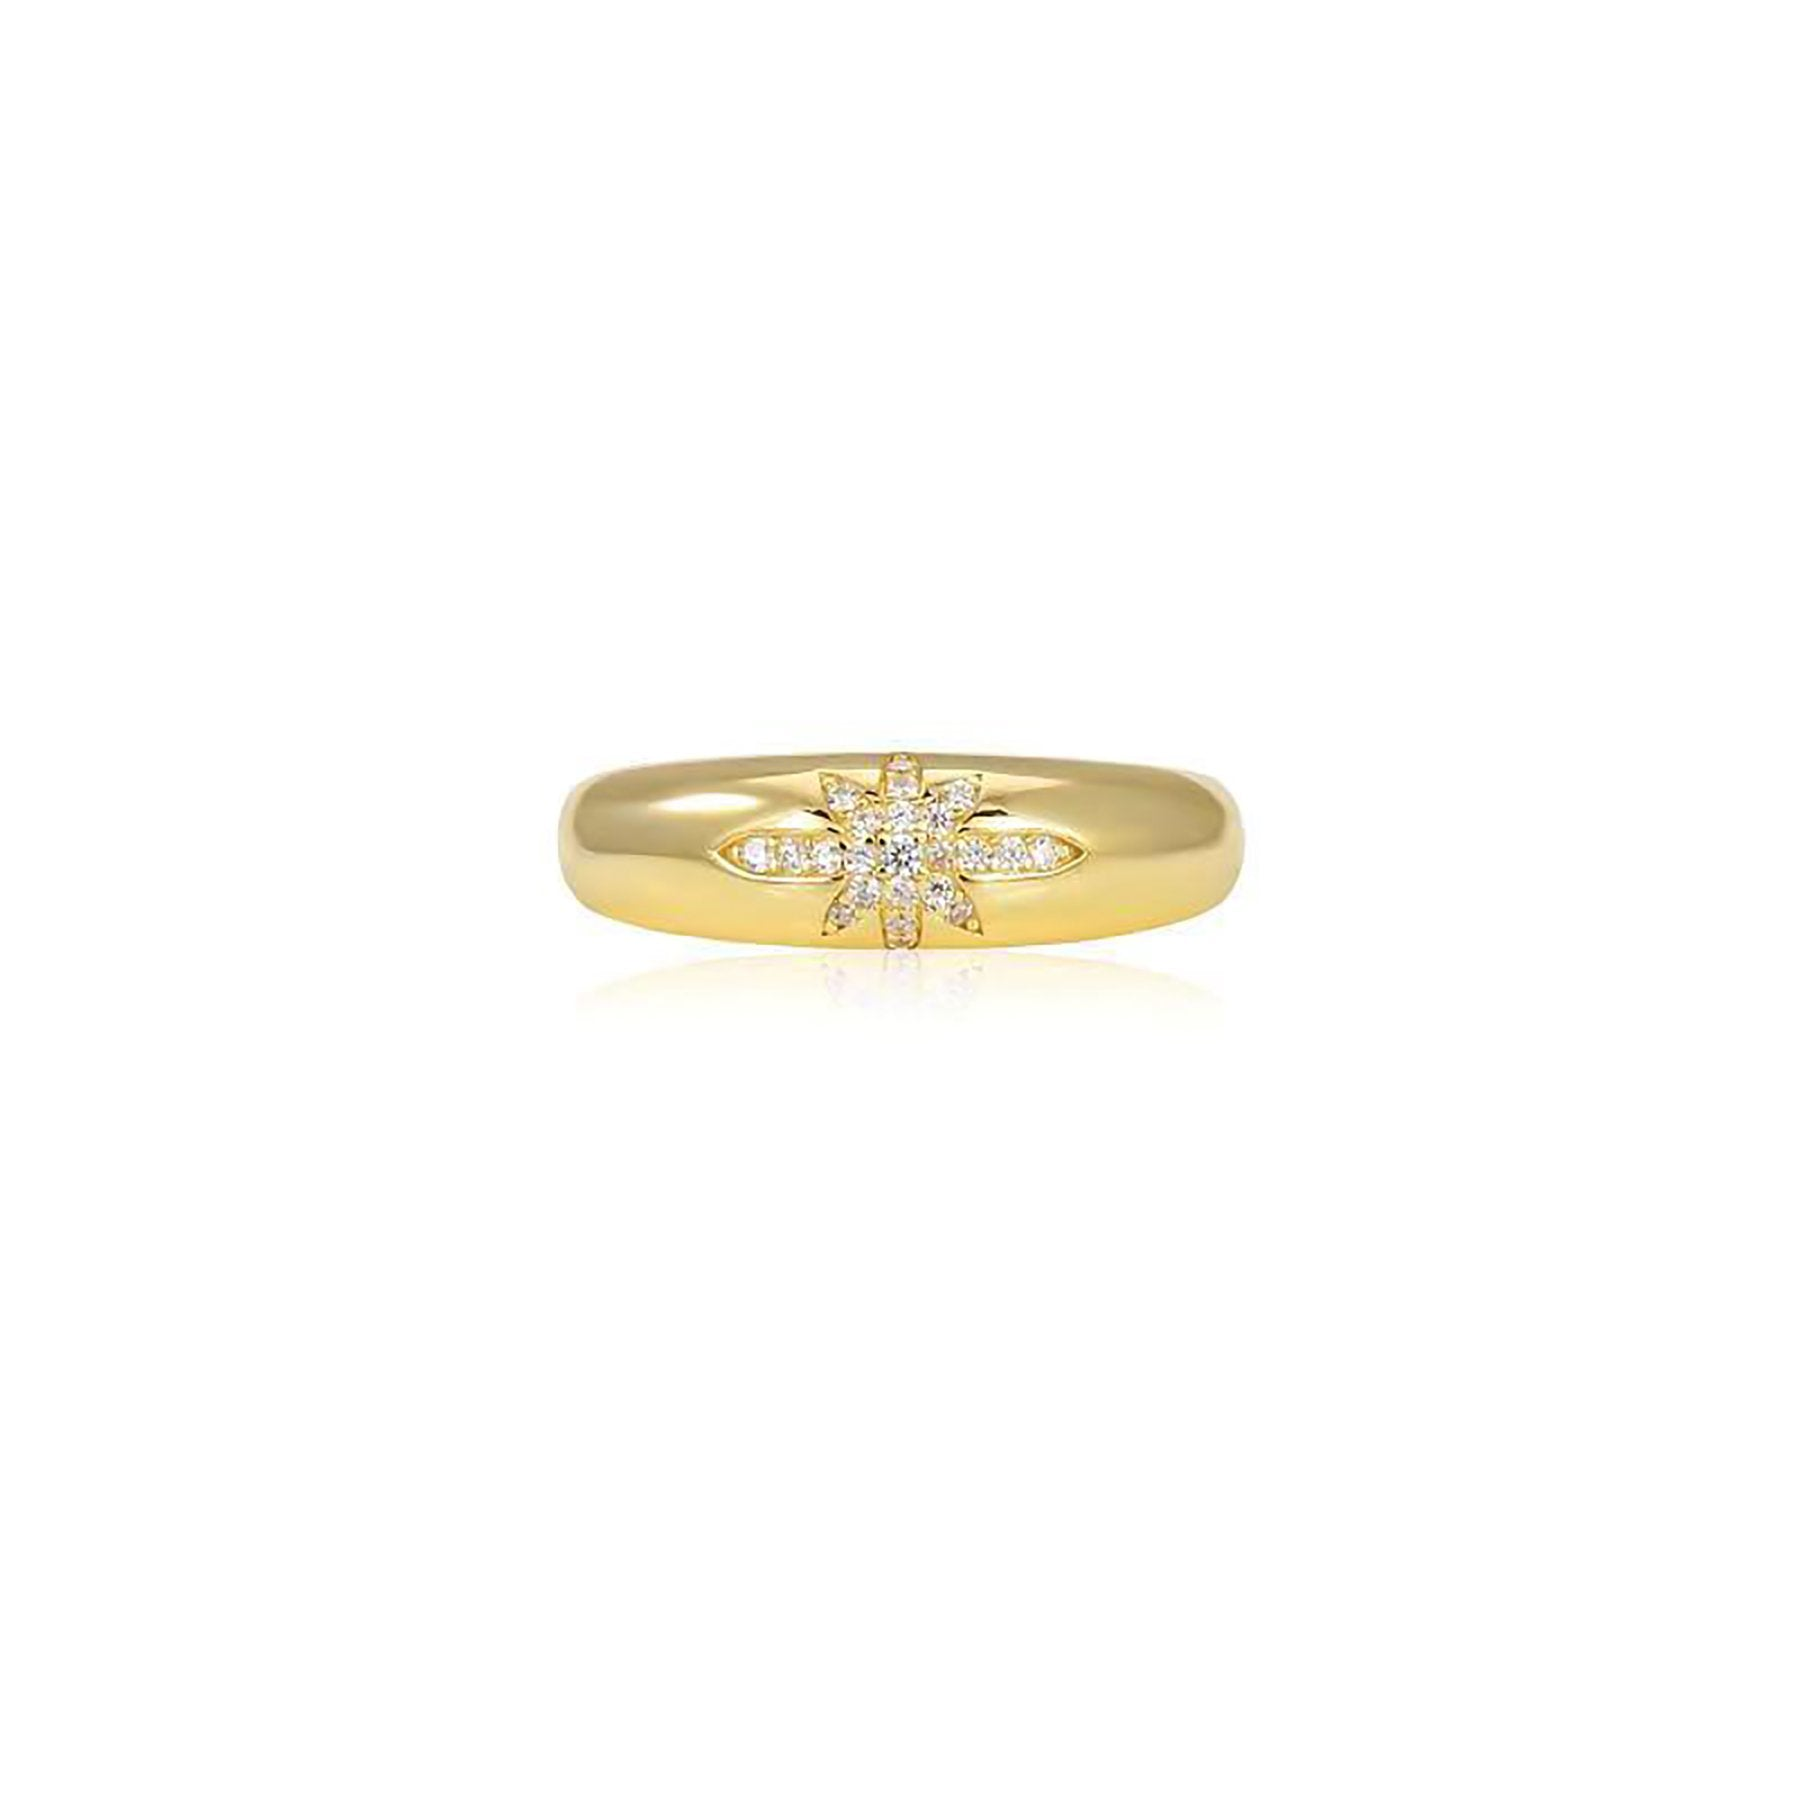 PROMINENT COVER RING WITH INSET STAR GLOD PLATED